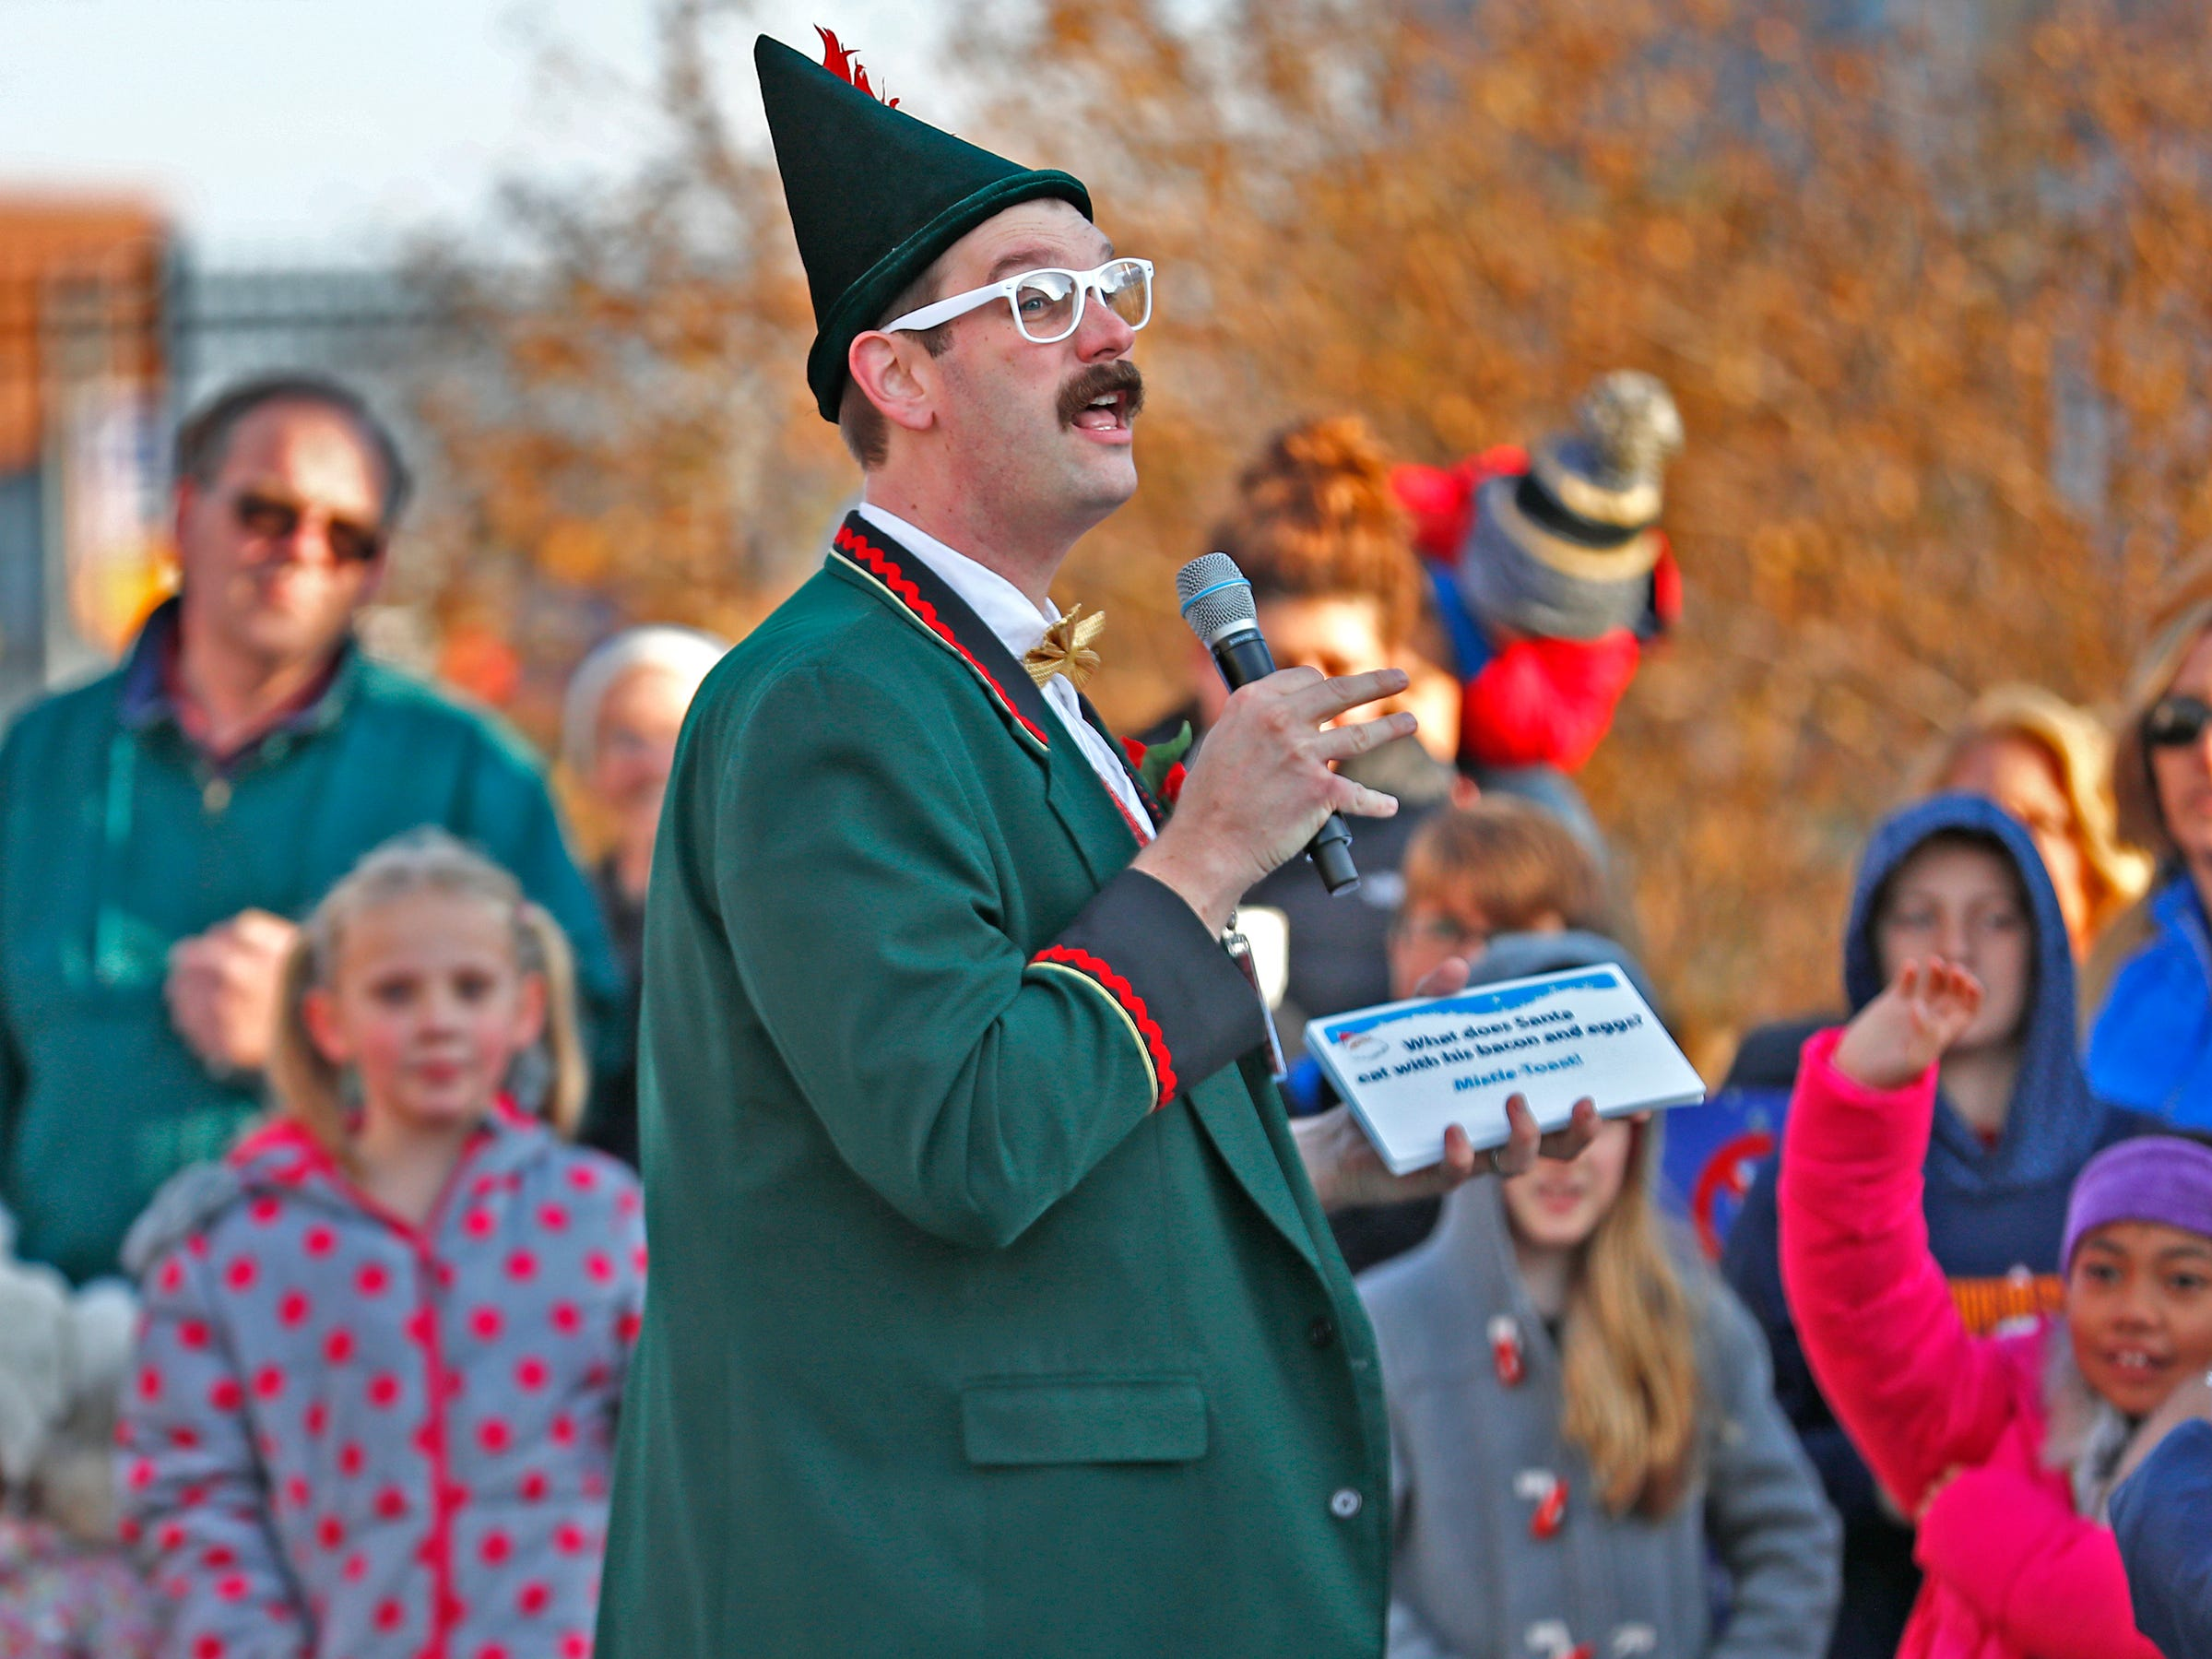 Zazzelz, the Elf, aka Michael Hosp, tells holiday jokes to entertain the crowd as they await Santa's arrival at the Children's Museum of Indianapolis in an IndyCar driven by racer Ed Carpenter, Friday, Nov. 23, 2018.